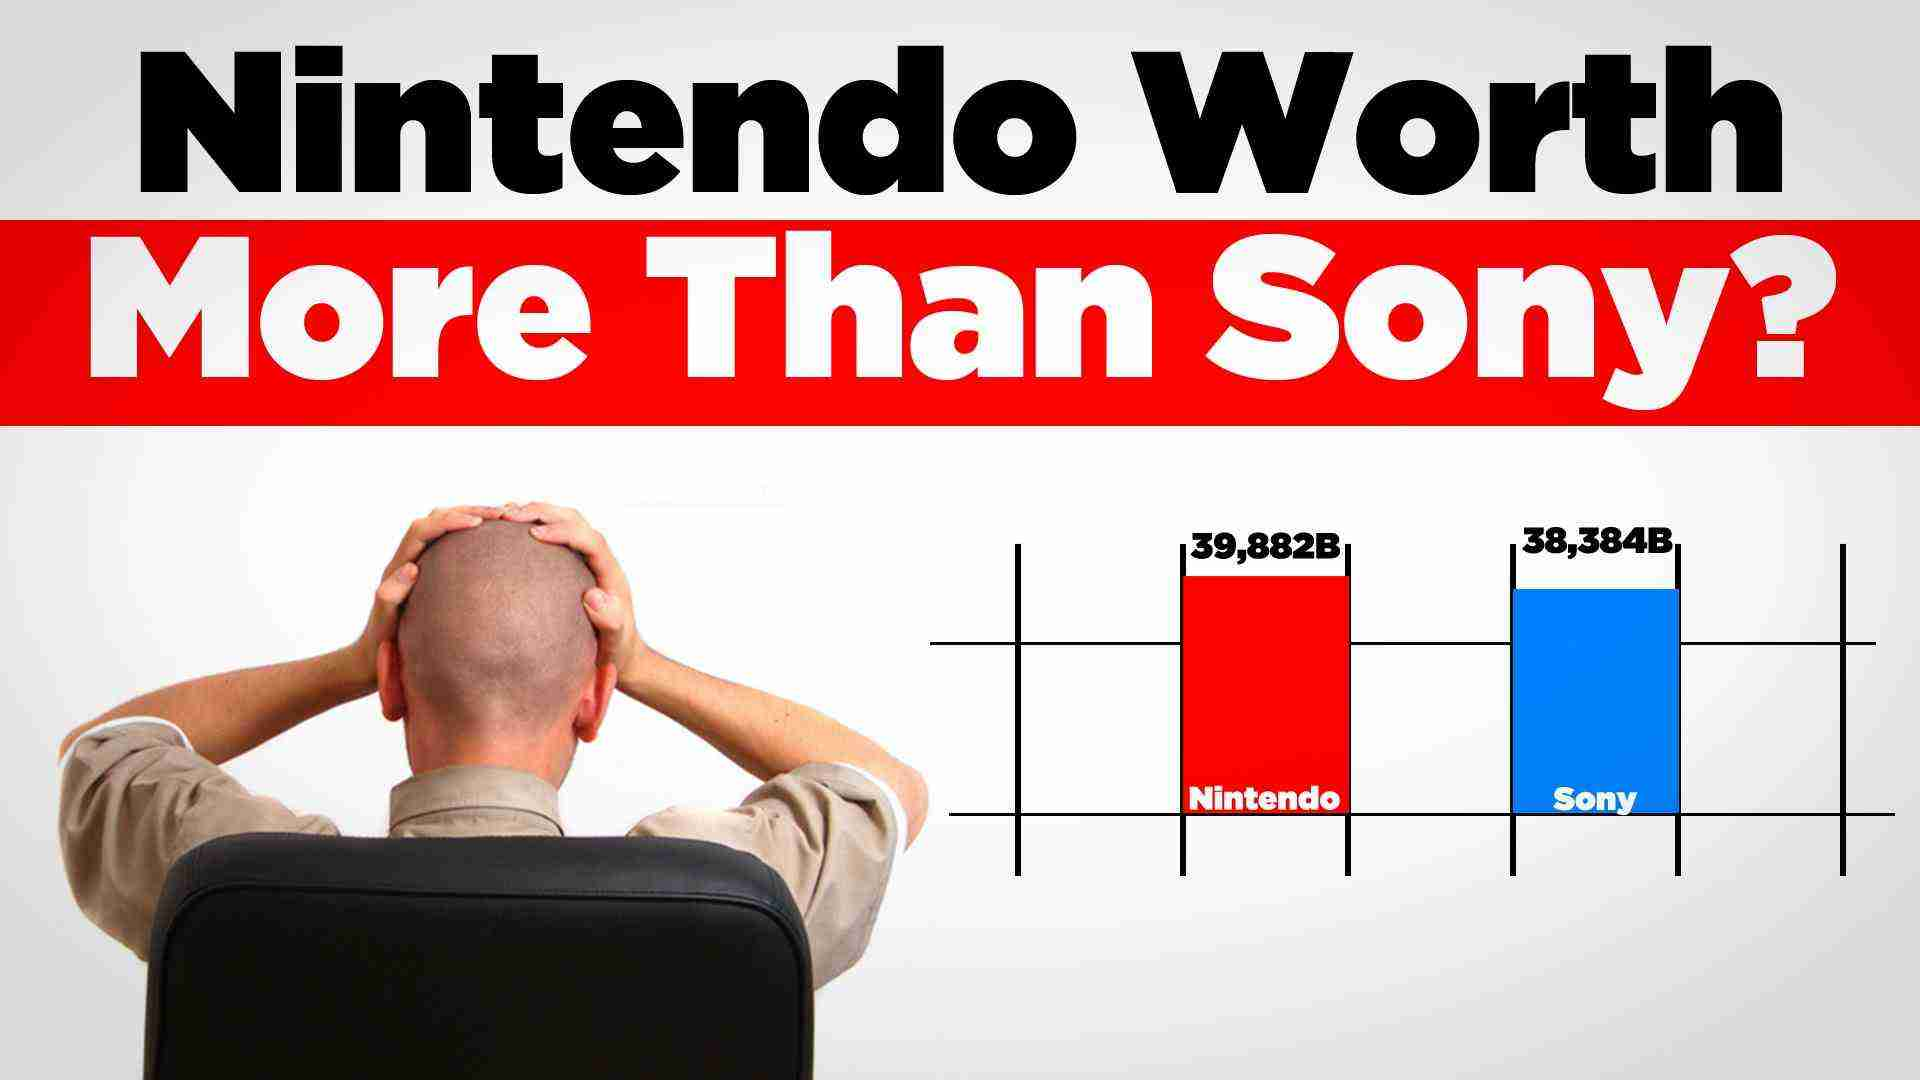 Nintendo Now Worth More Than Sony? – Inside Gaming Daily